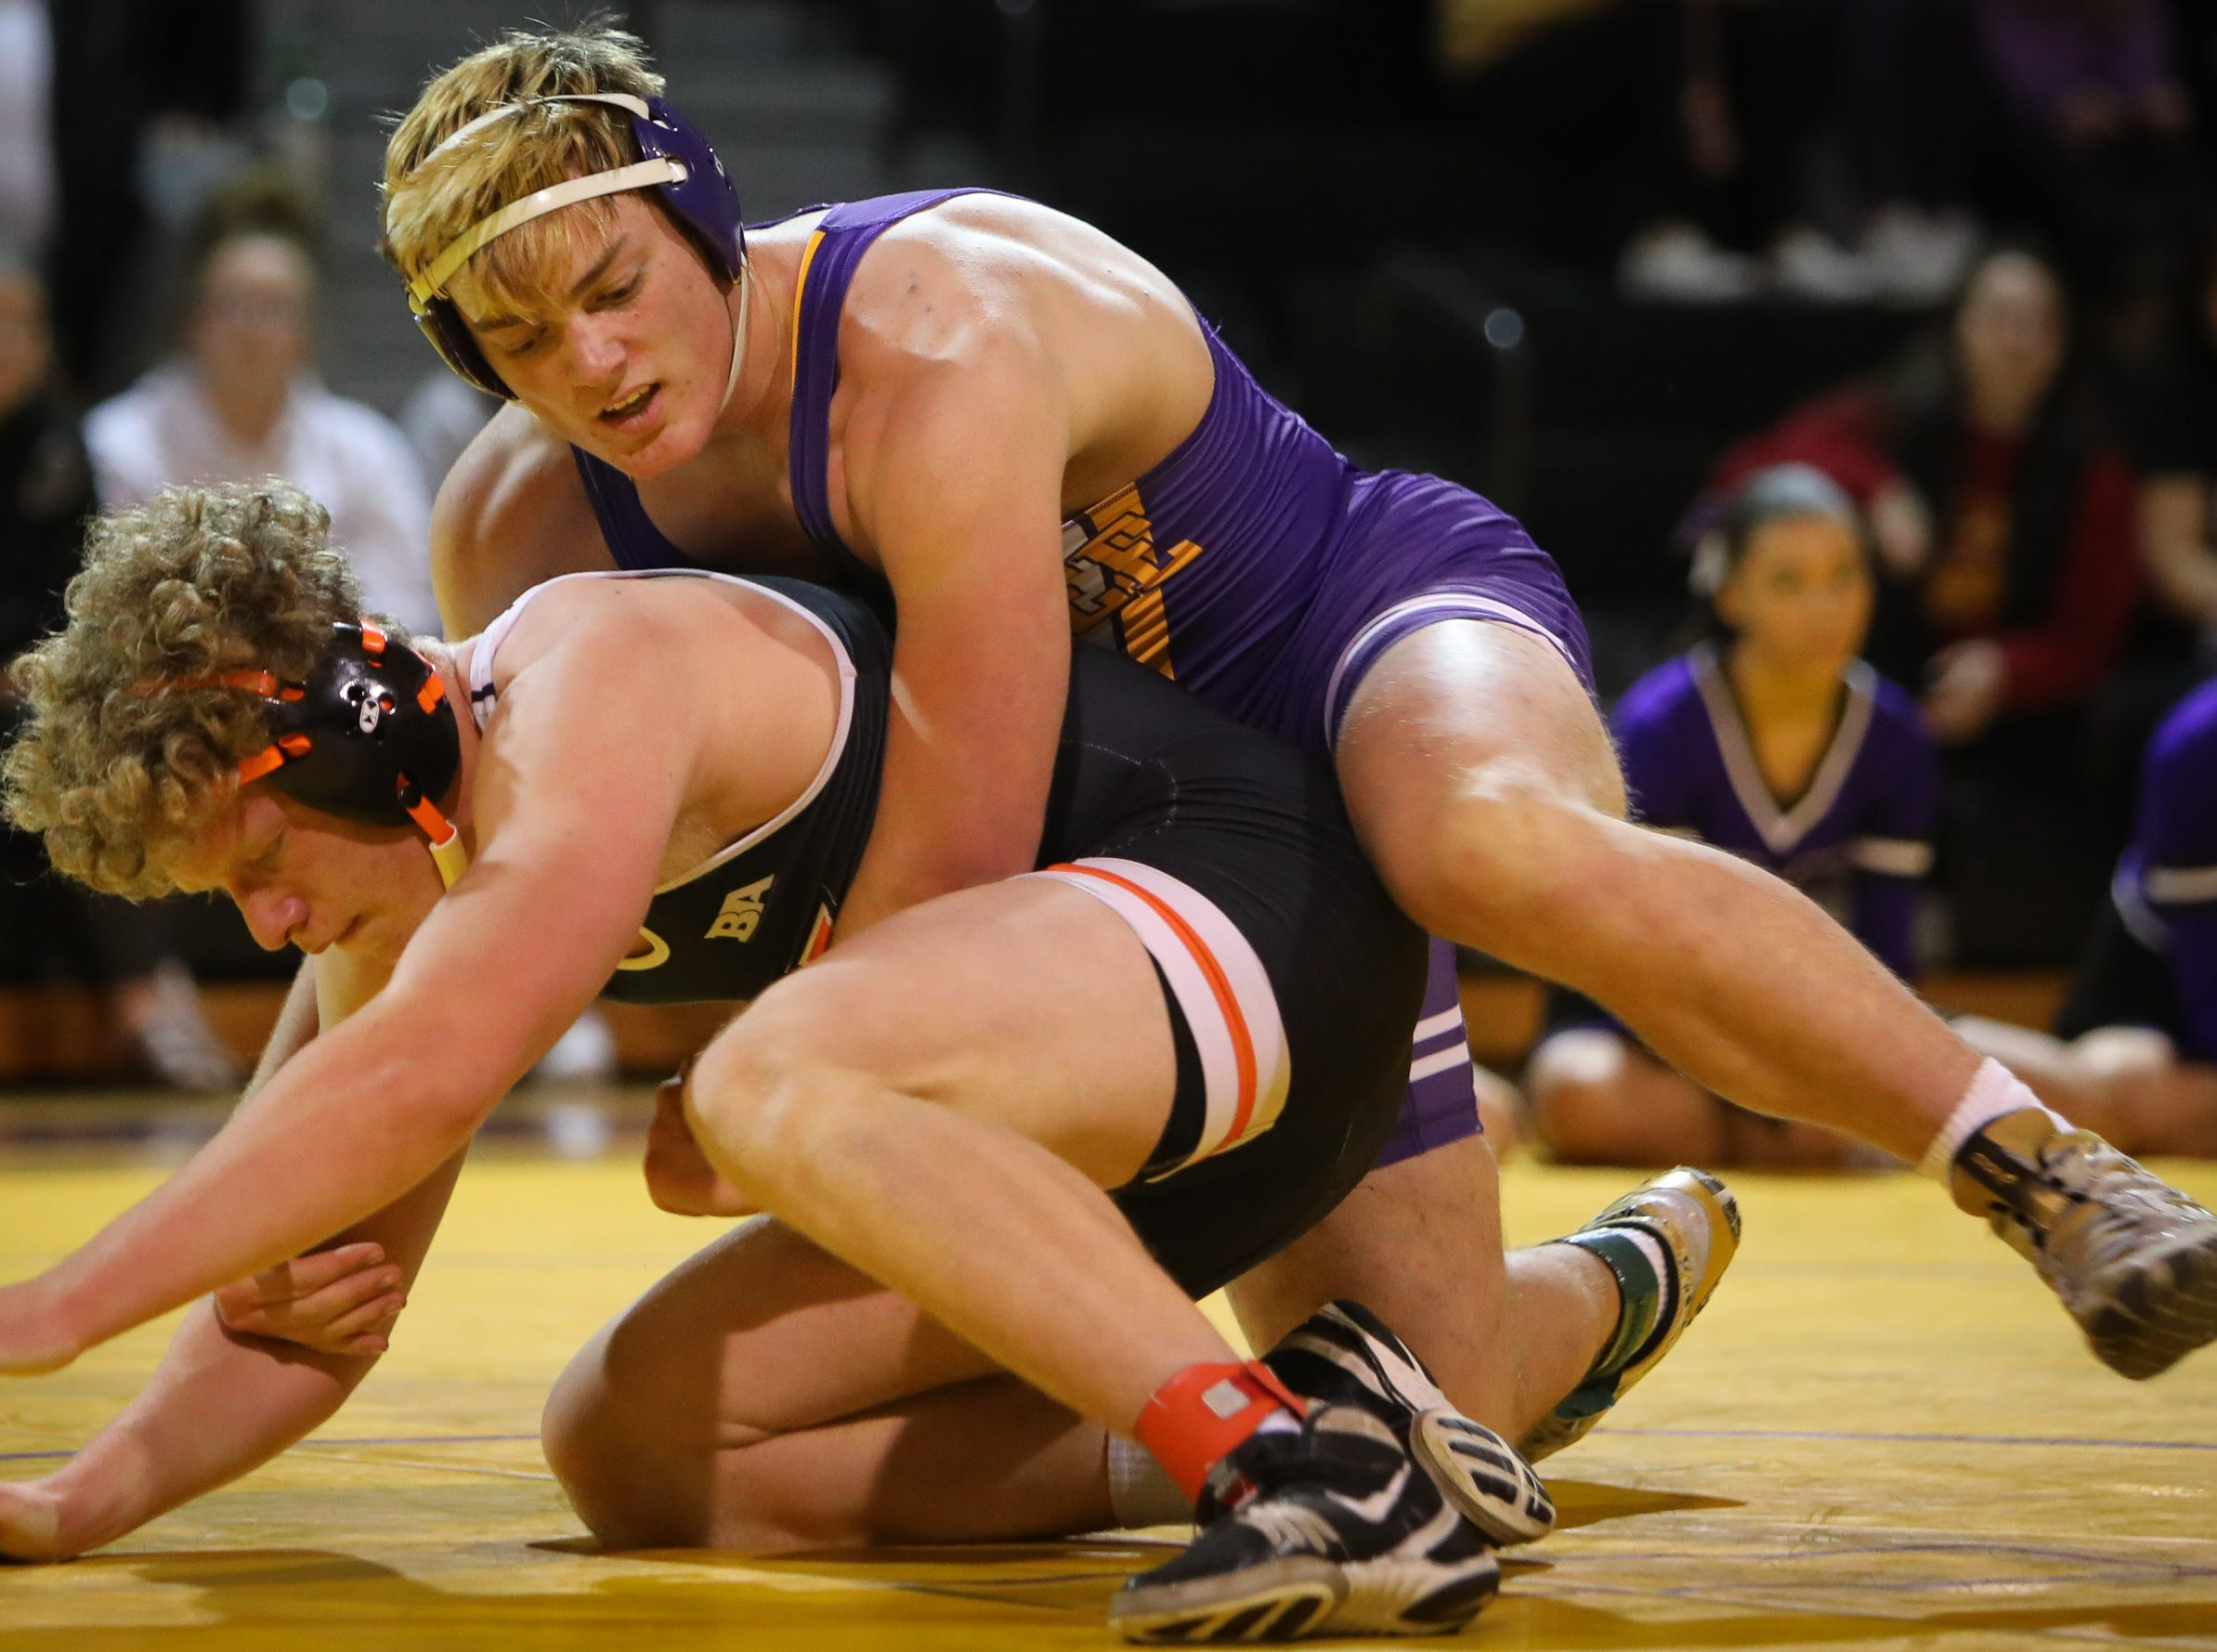 Waukee junior Cael Thorson wrestles Valley senior Bracken Cobb during a high school wrestling meet between the Valley Tigers and the Waukee Warriors at Waukee High School on Dec. 20, 2018 in Waukee, Iowa.